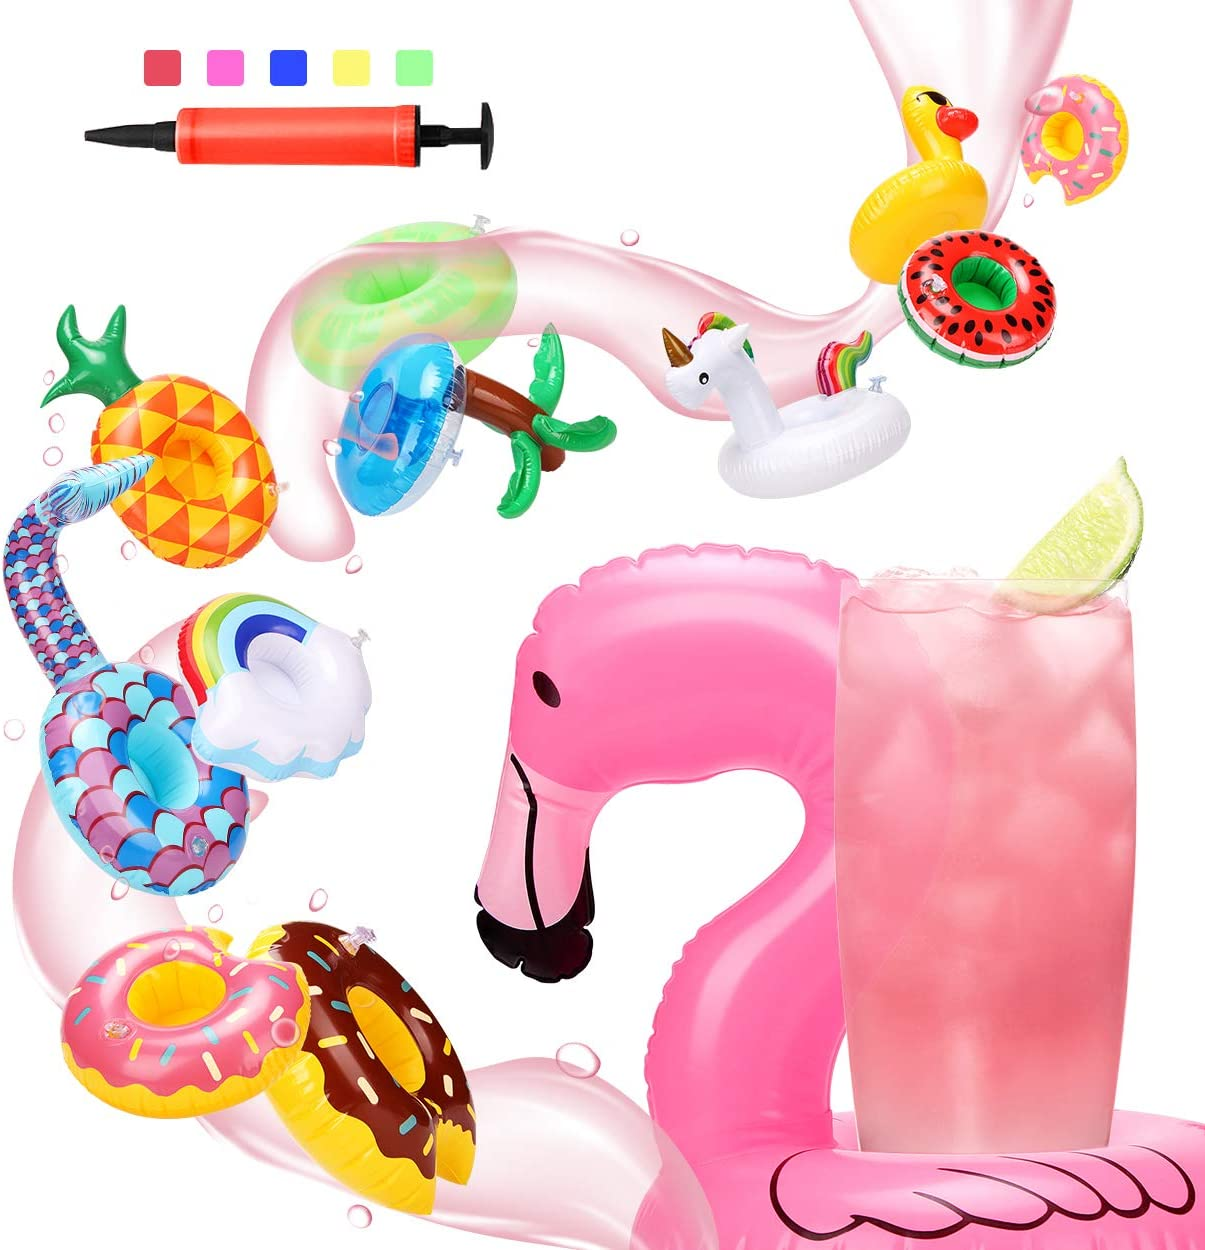 NEW Inflatable Hunk Drink Holder Cooler Holds Your Drink In the Pool Gag Gift